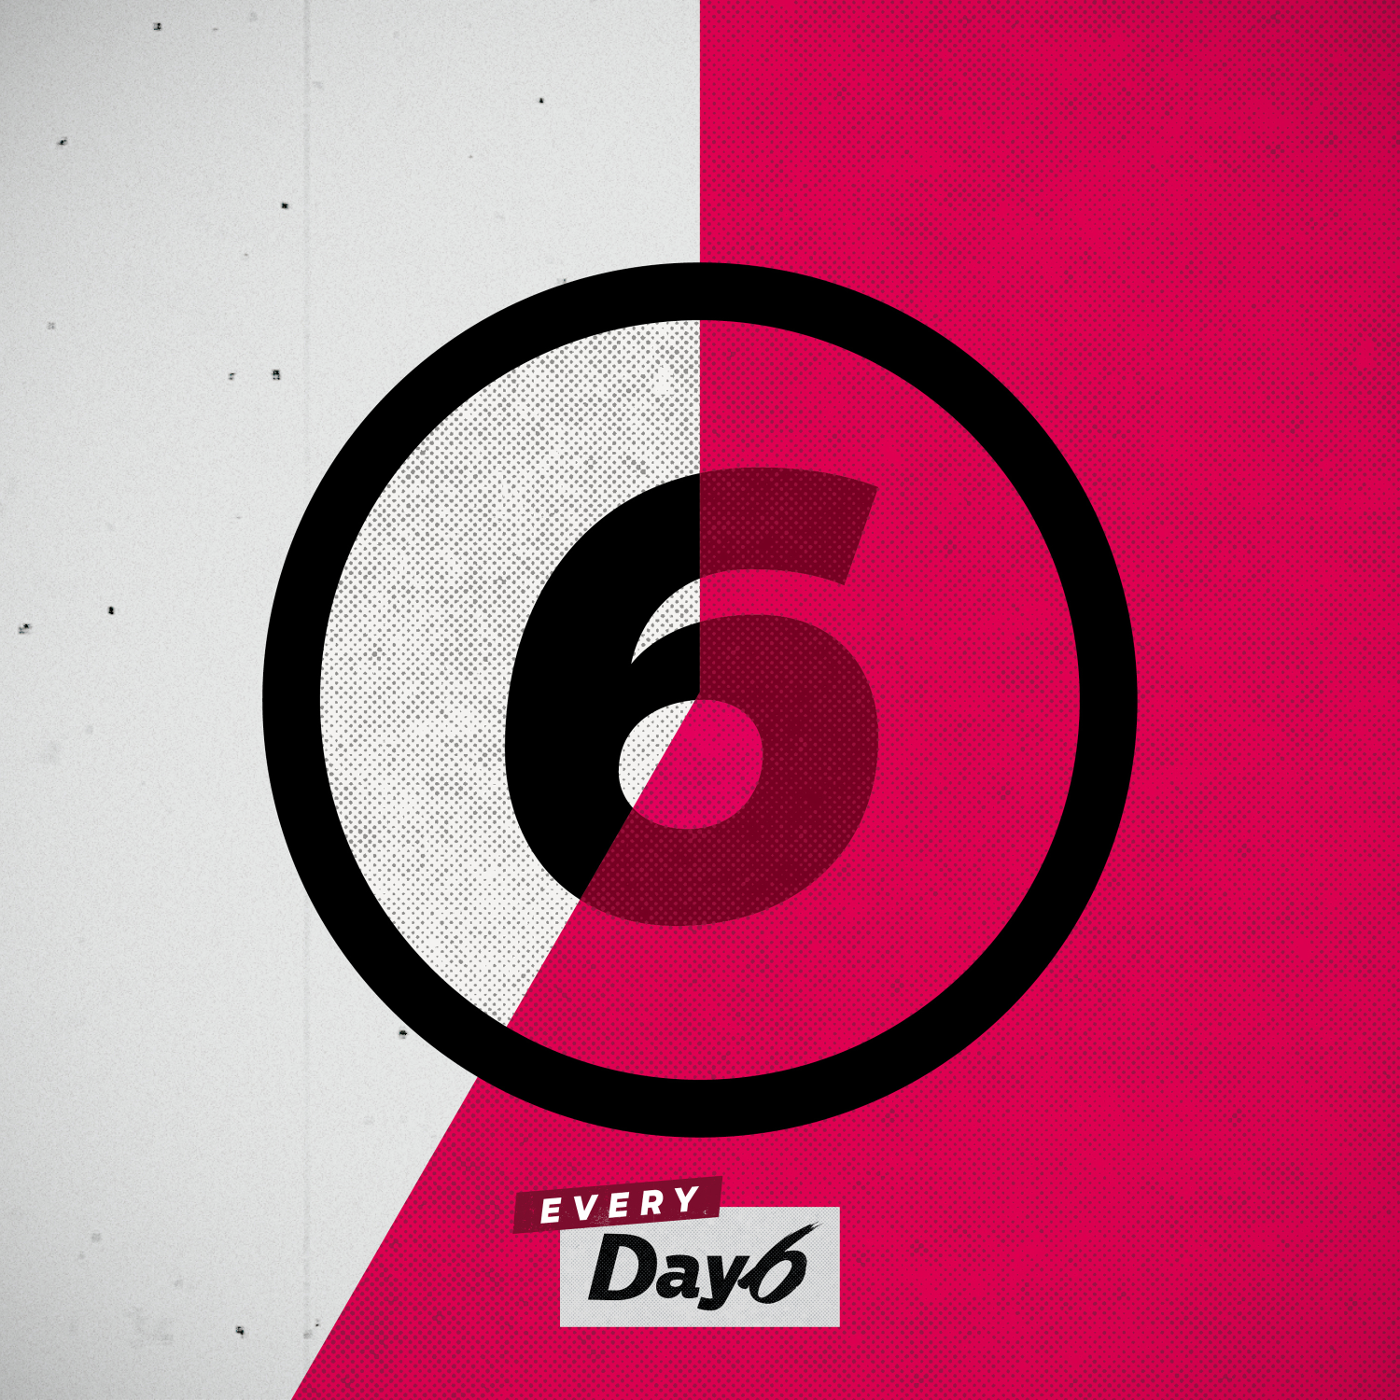 Every DAY6 July